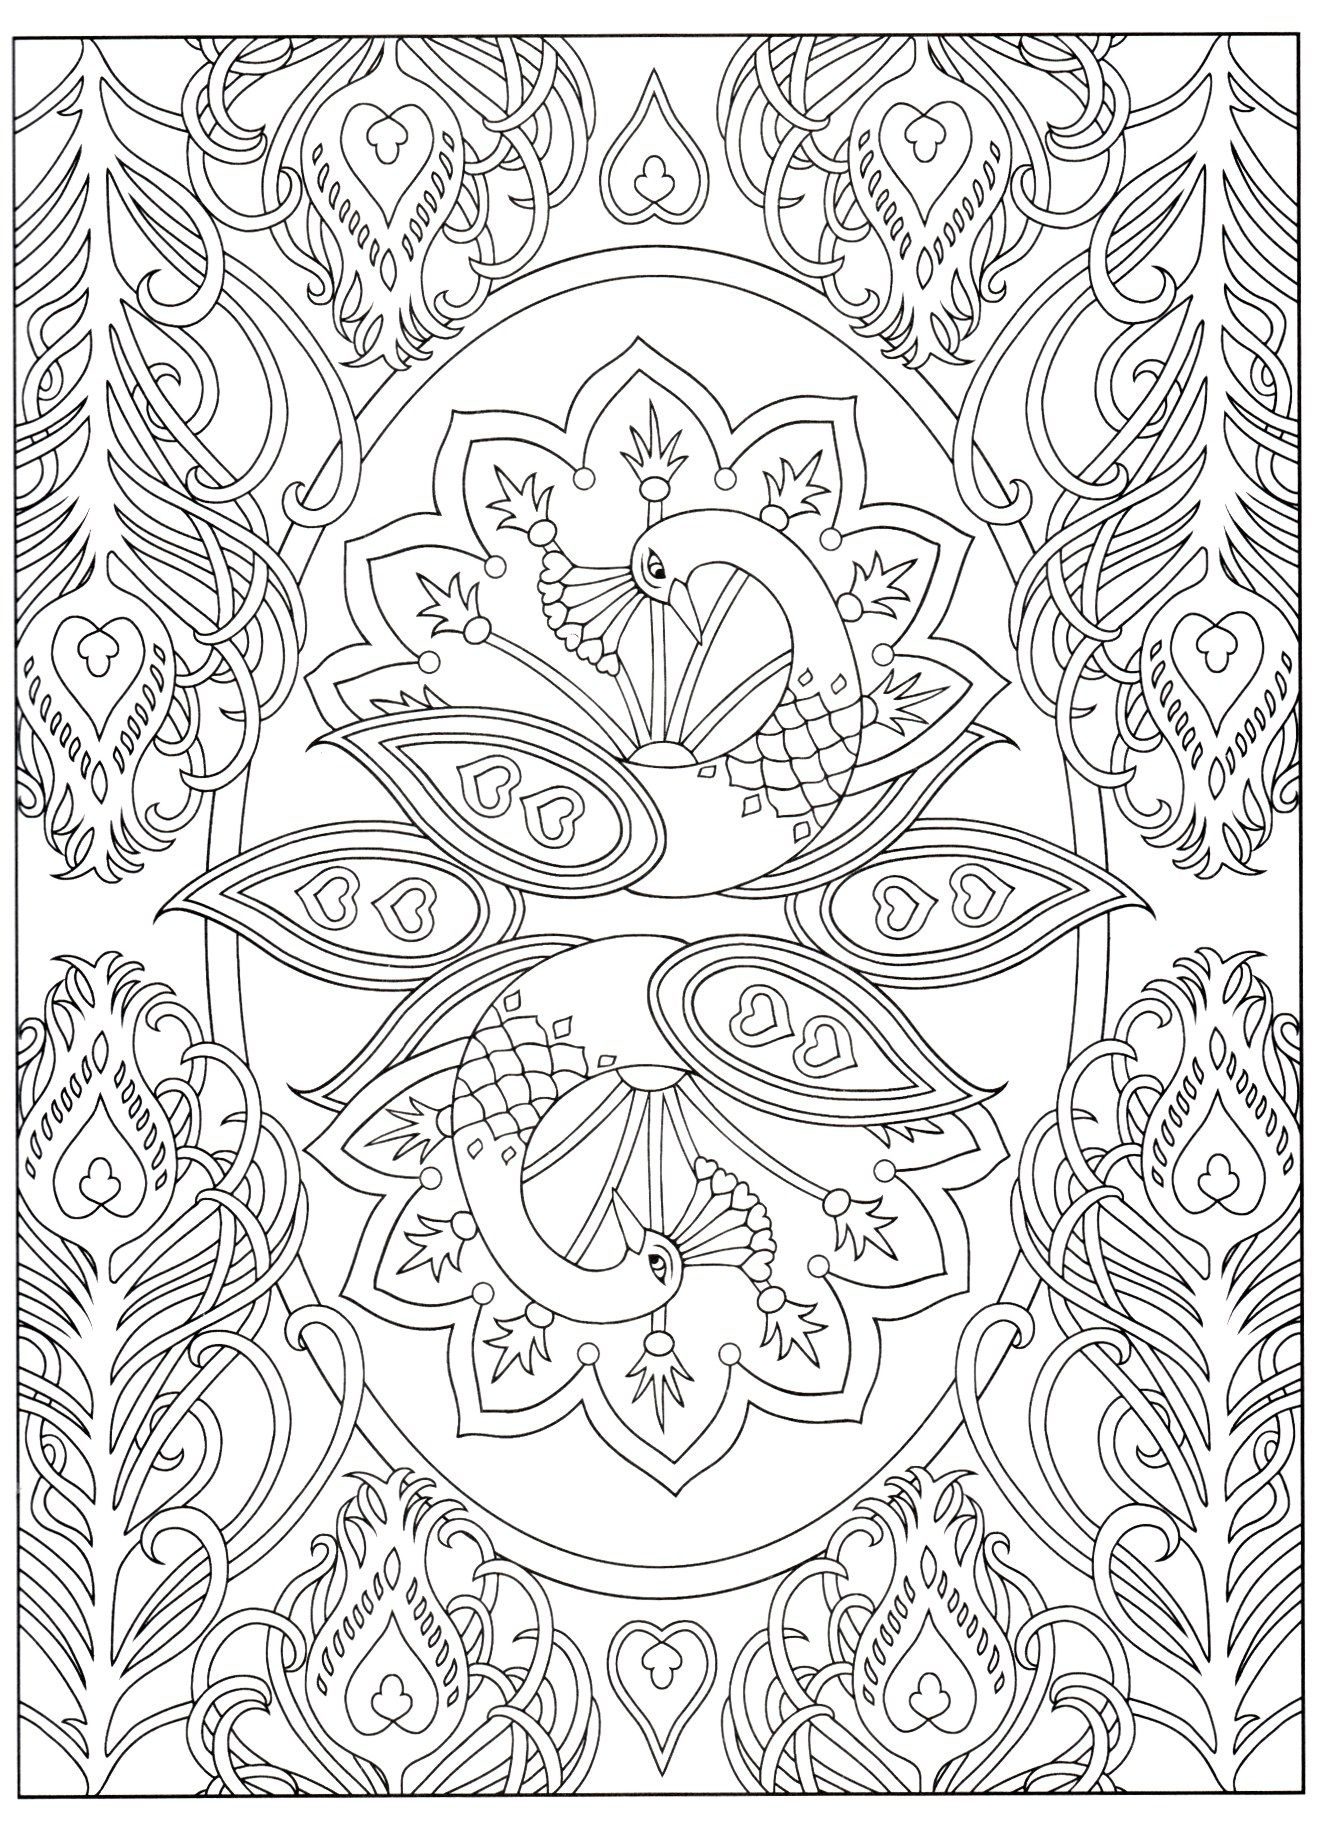 Creative Haven S Peacock Designs Peacock Coloring Pages Mandala